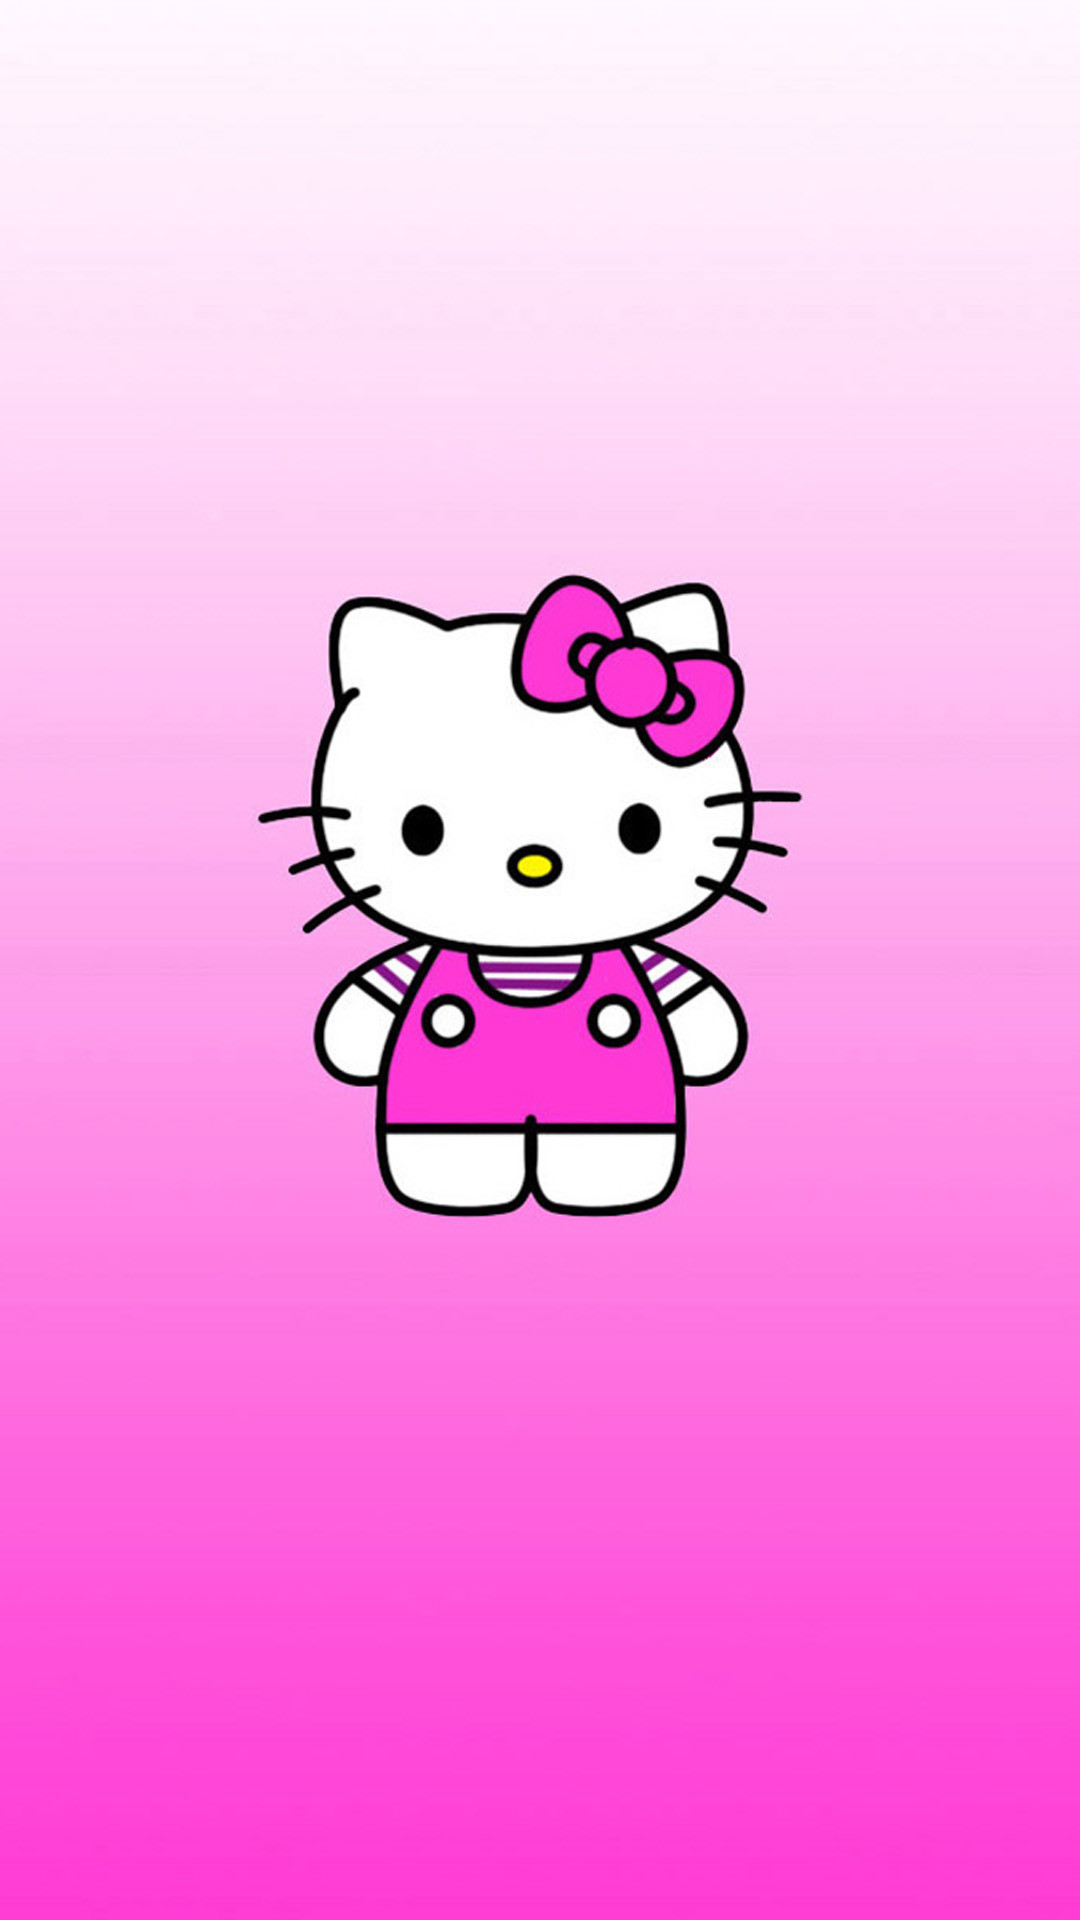 Beautiful Wallpaper Hello Kitty Car - 477236-hello-kitty-screensavers-and-wallpapers-1080x1920-for-1080p  Graphic_883946.jpg